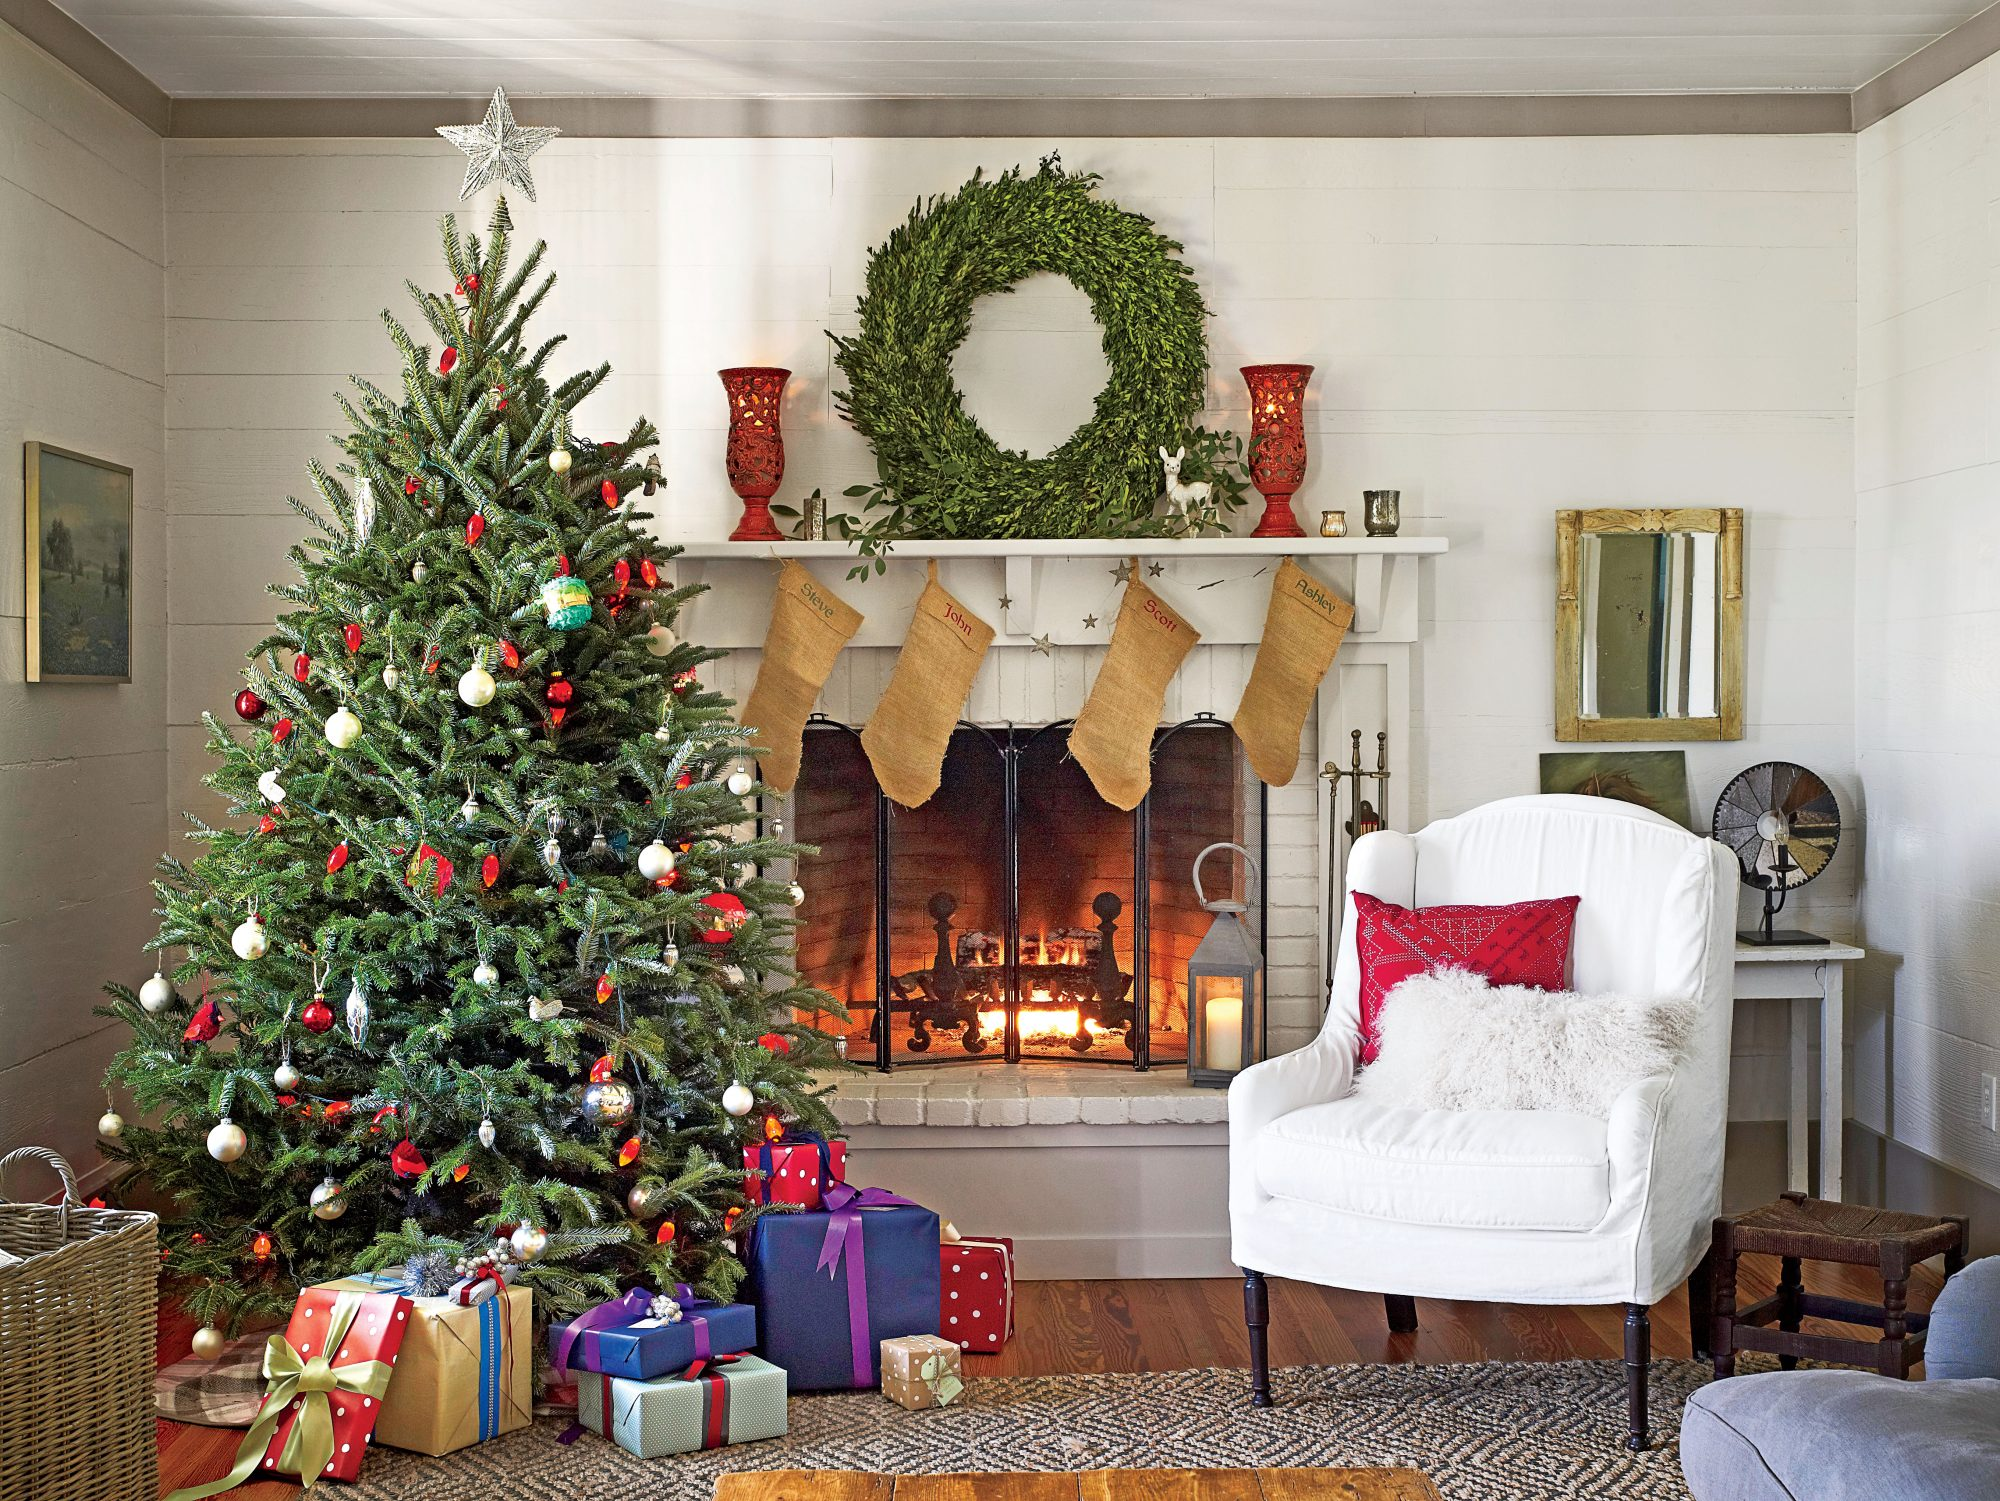 Christmas Tree Decoration Ideas   Pictures Of Christmas Trees We Love    Southern Living